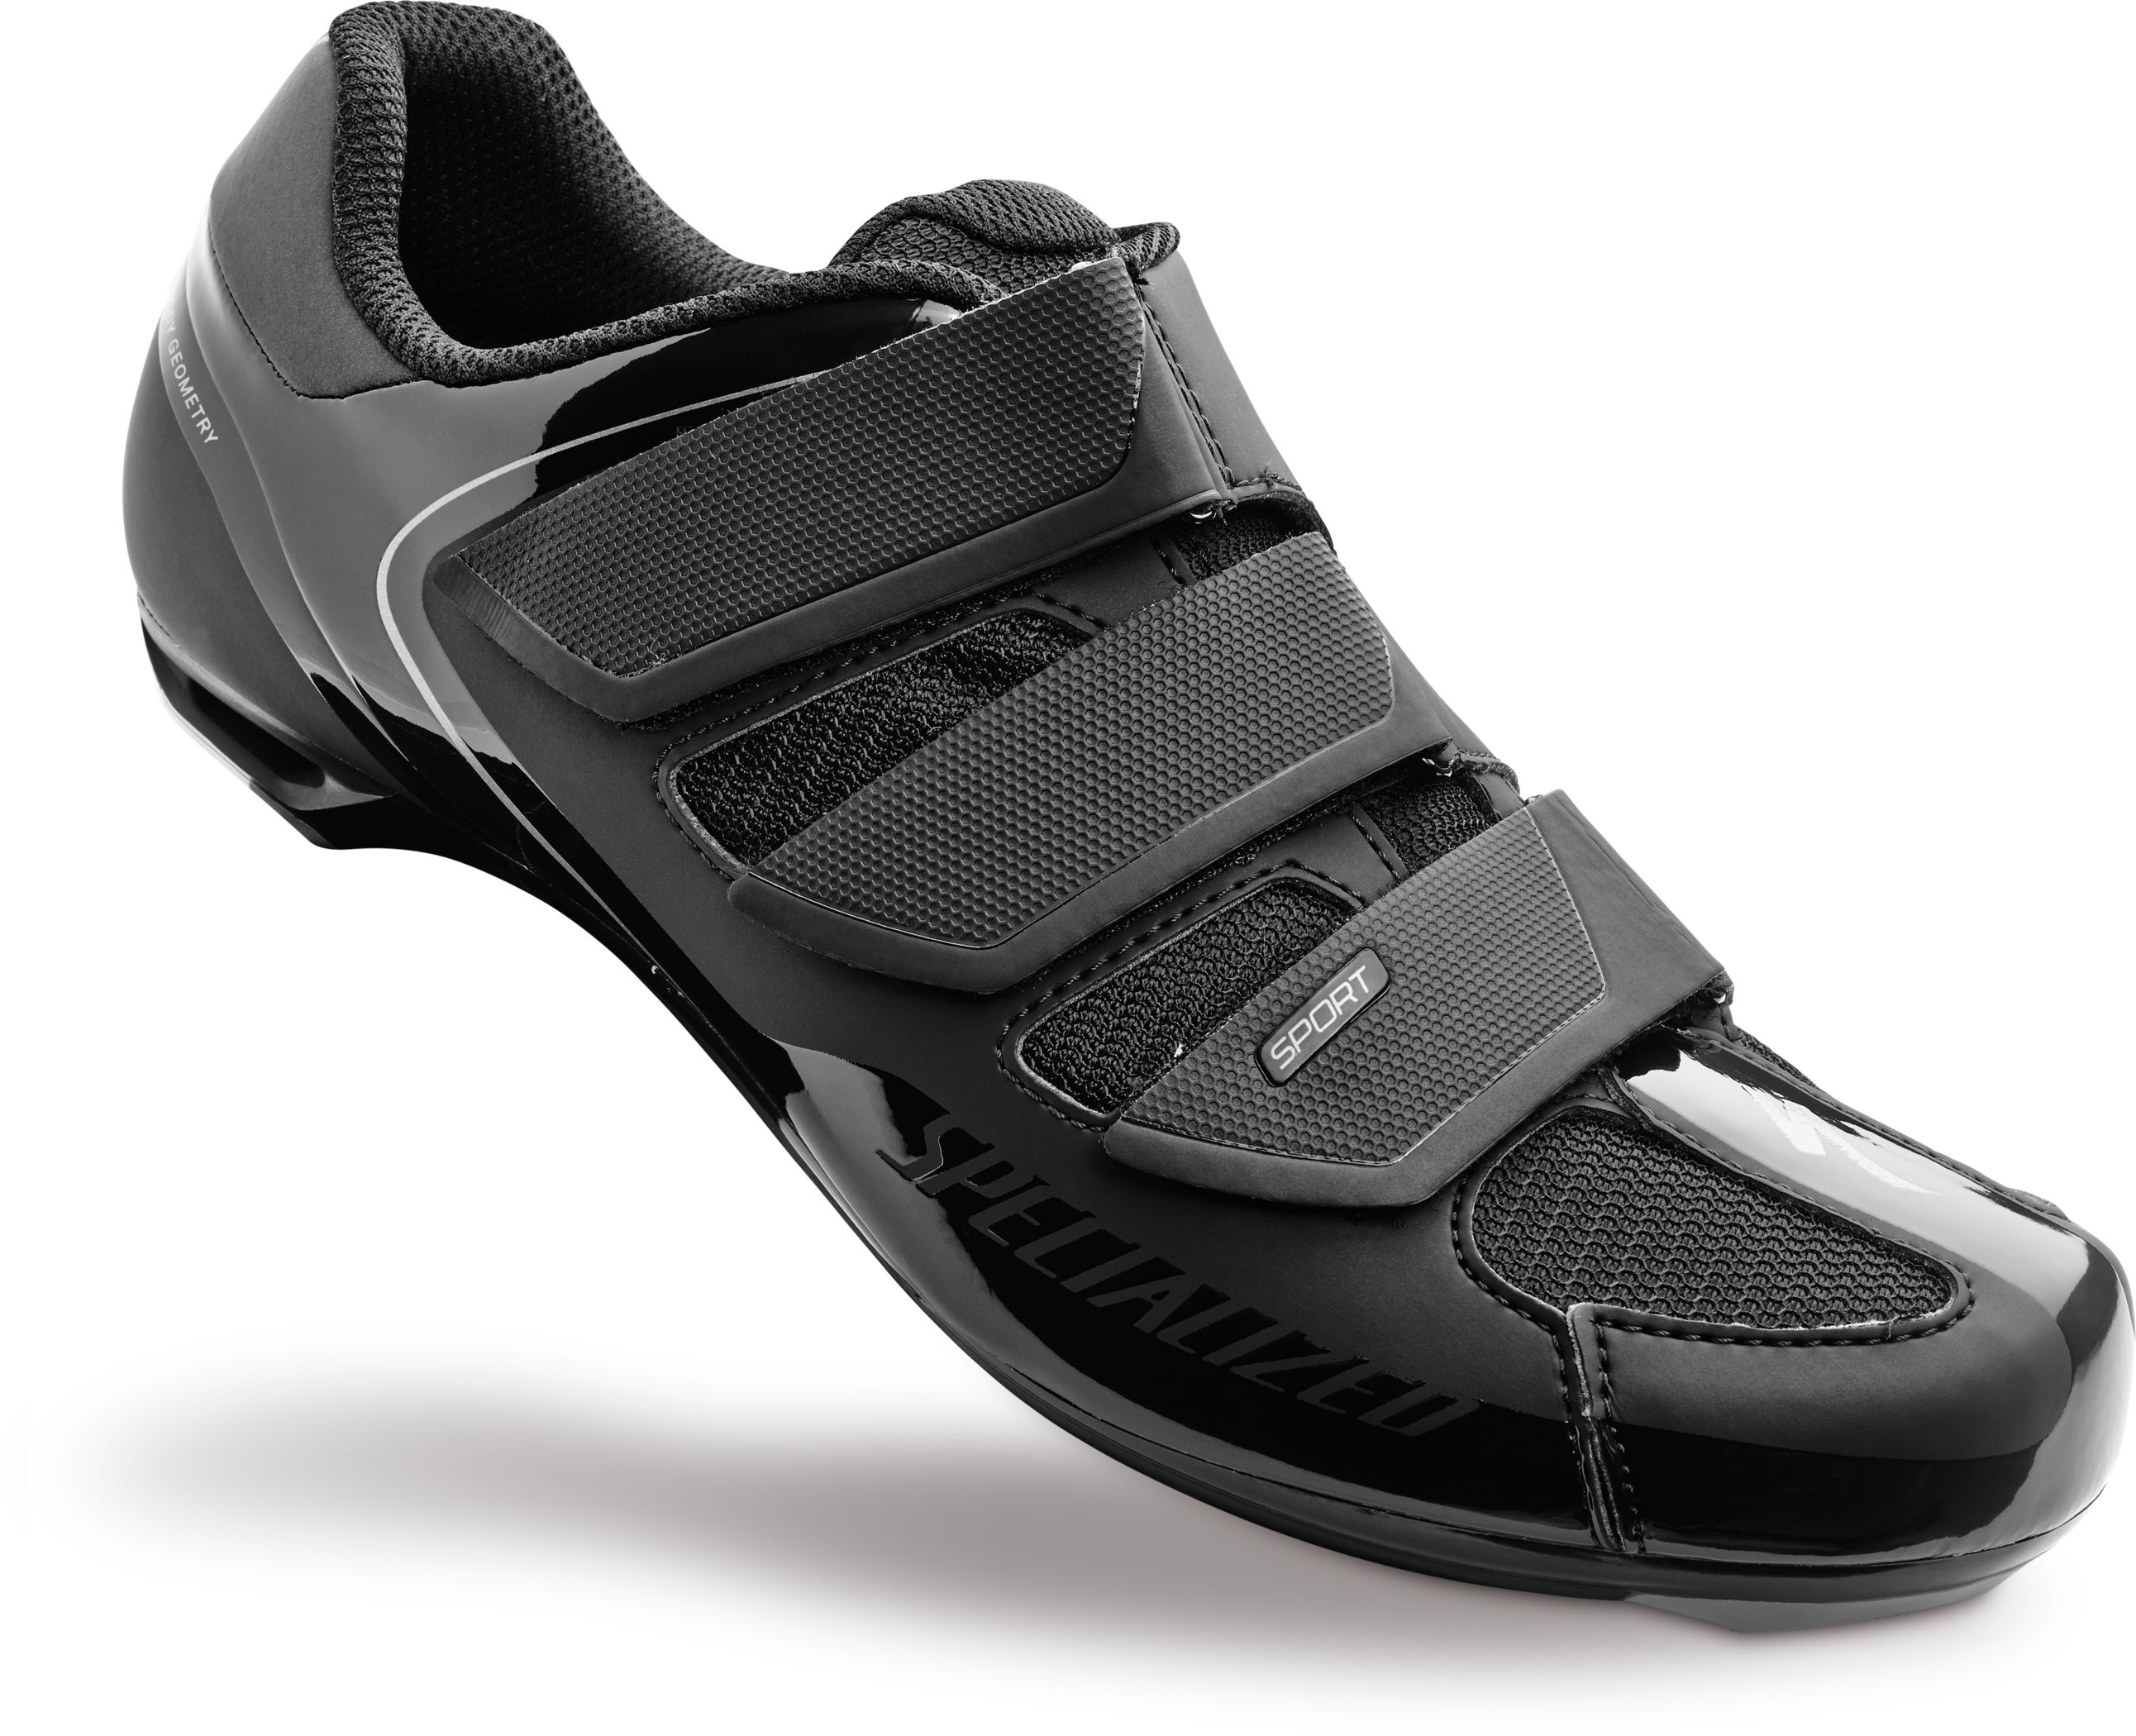 SPECIALIZED SPORT RD SHOE BLK 44/10.6 - Alpha Bikes